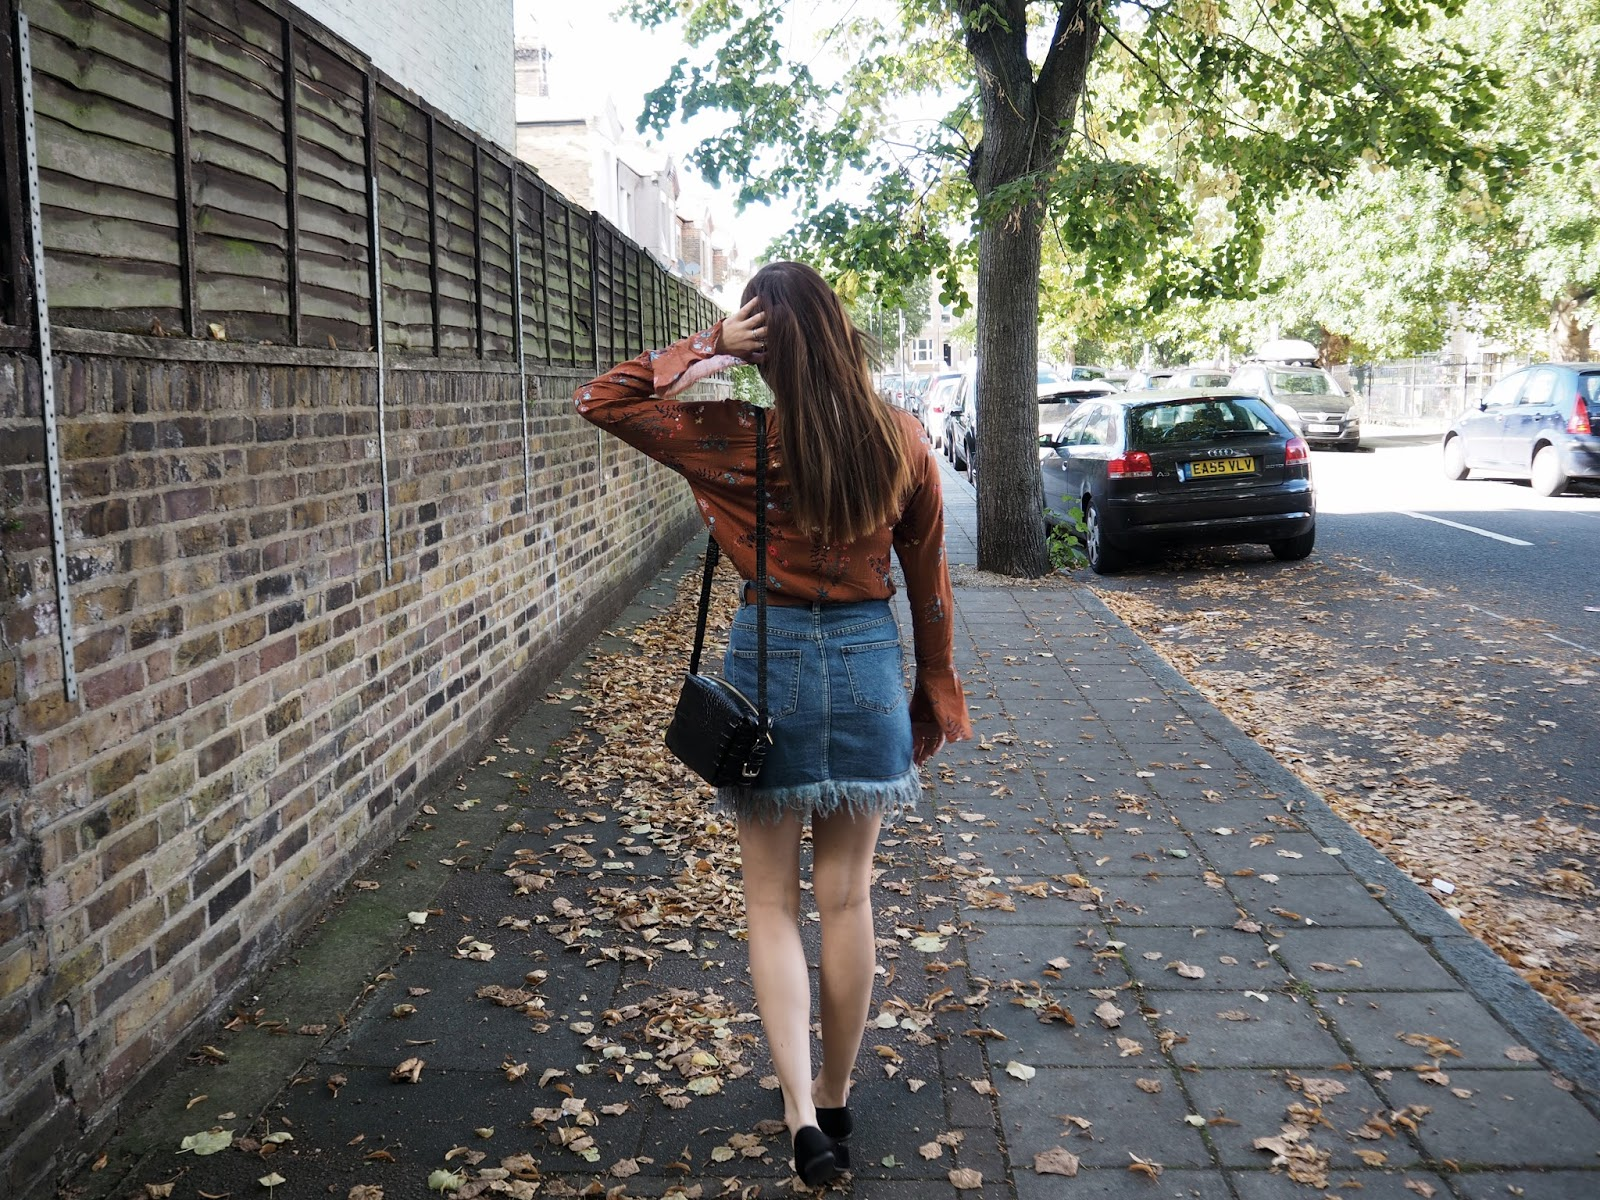 Autumn Dressing Fashion Style Outfit // Lauren Rose // London Fashion Lifestyle Blogger // Forever 21